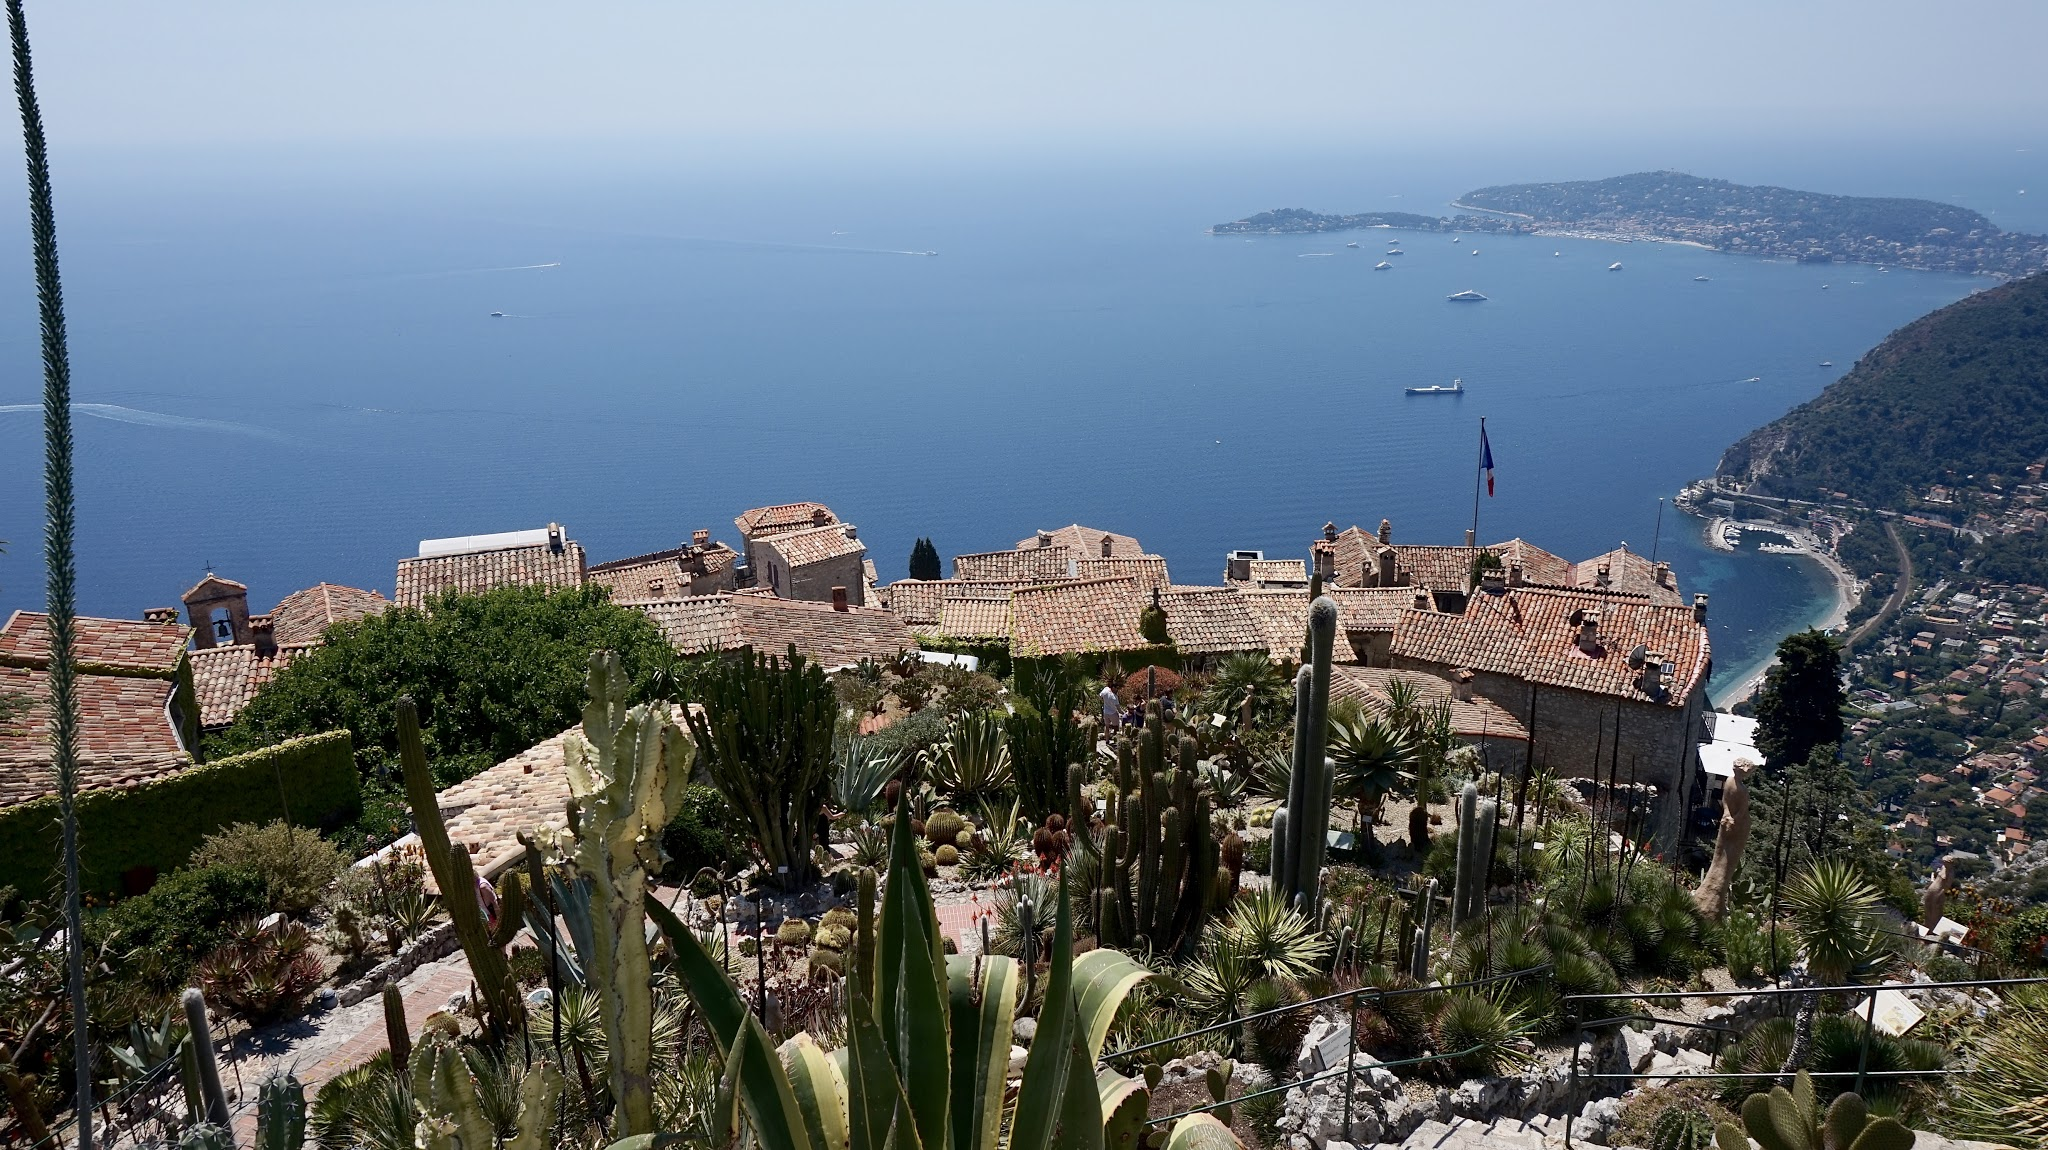 view from atop the high cliff in Eze, looking down to a blue sea, with red rooftops and exotic plants